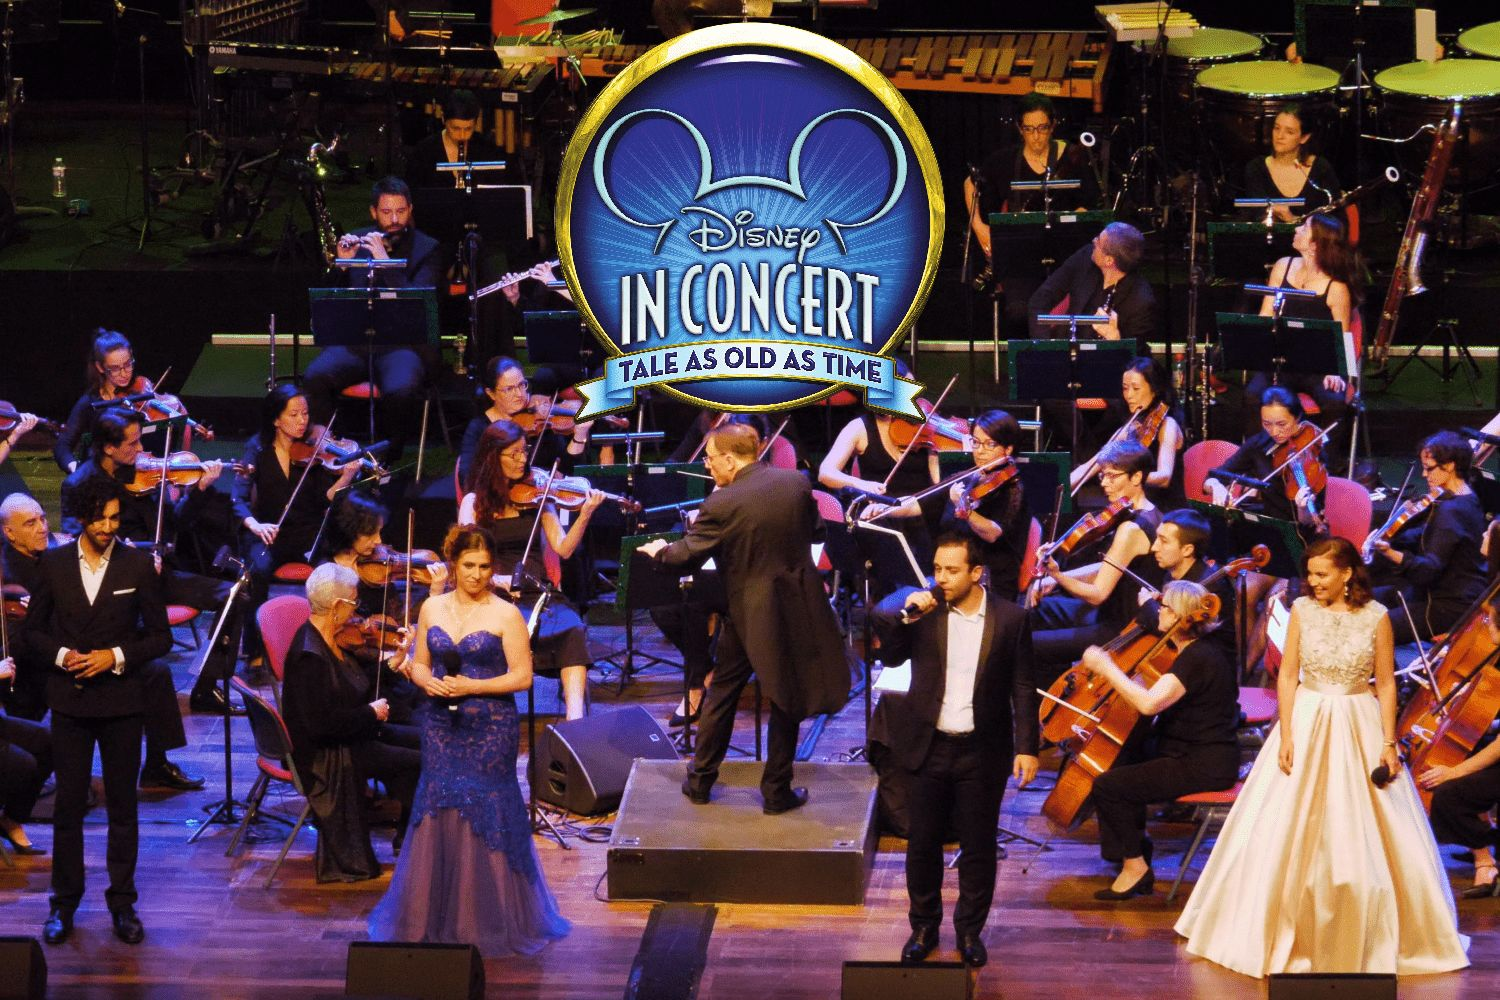 Disney in Concert: Tale As Old As Time